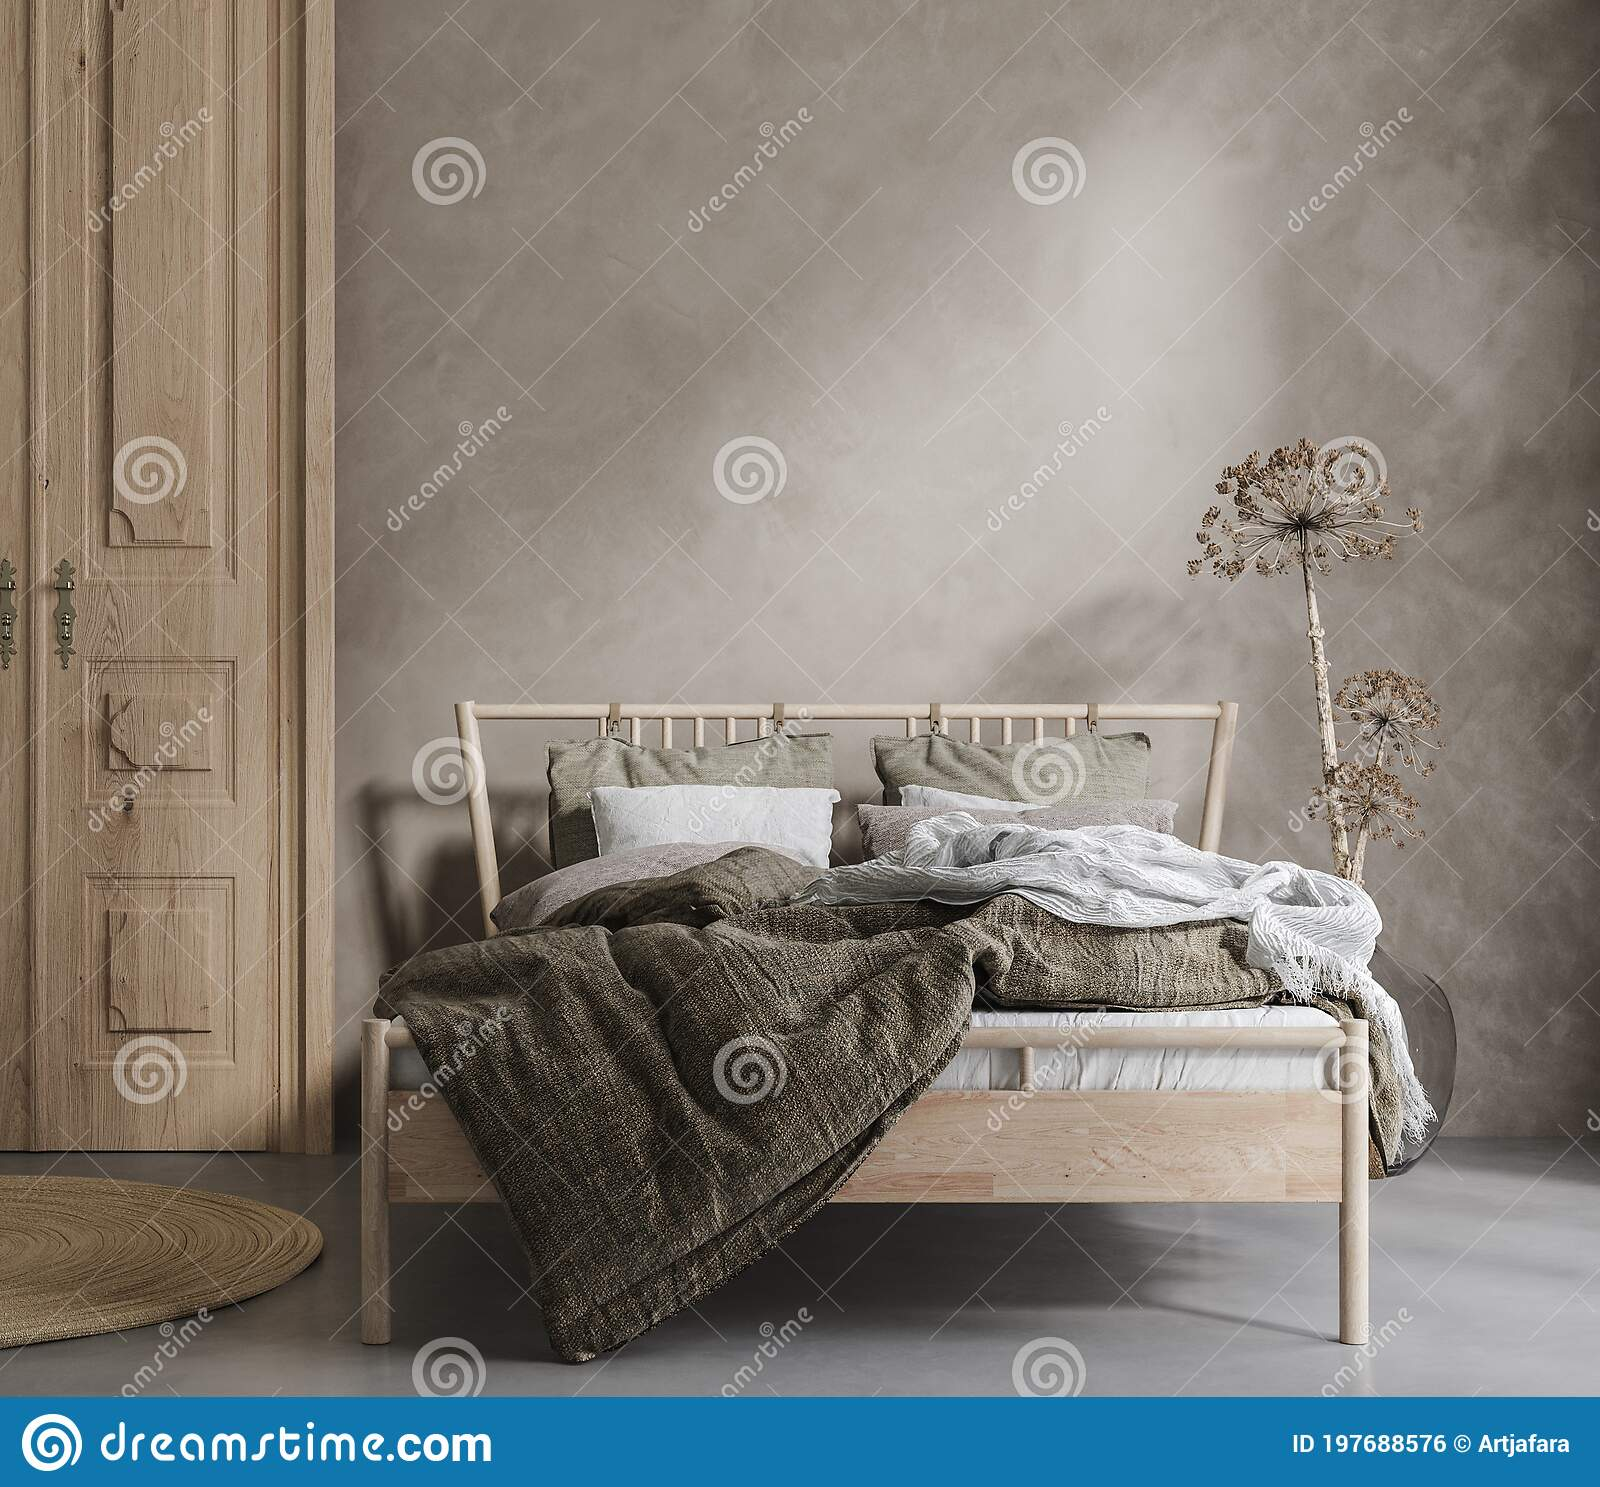 Bed With Linen Bedding Dry Plant And Wooden Door In Bedroom Room In Natural Tones Stock Illustration Illustration Of Architecture Room 197688576